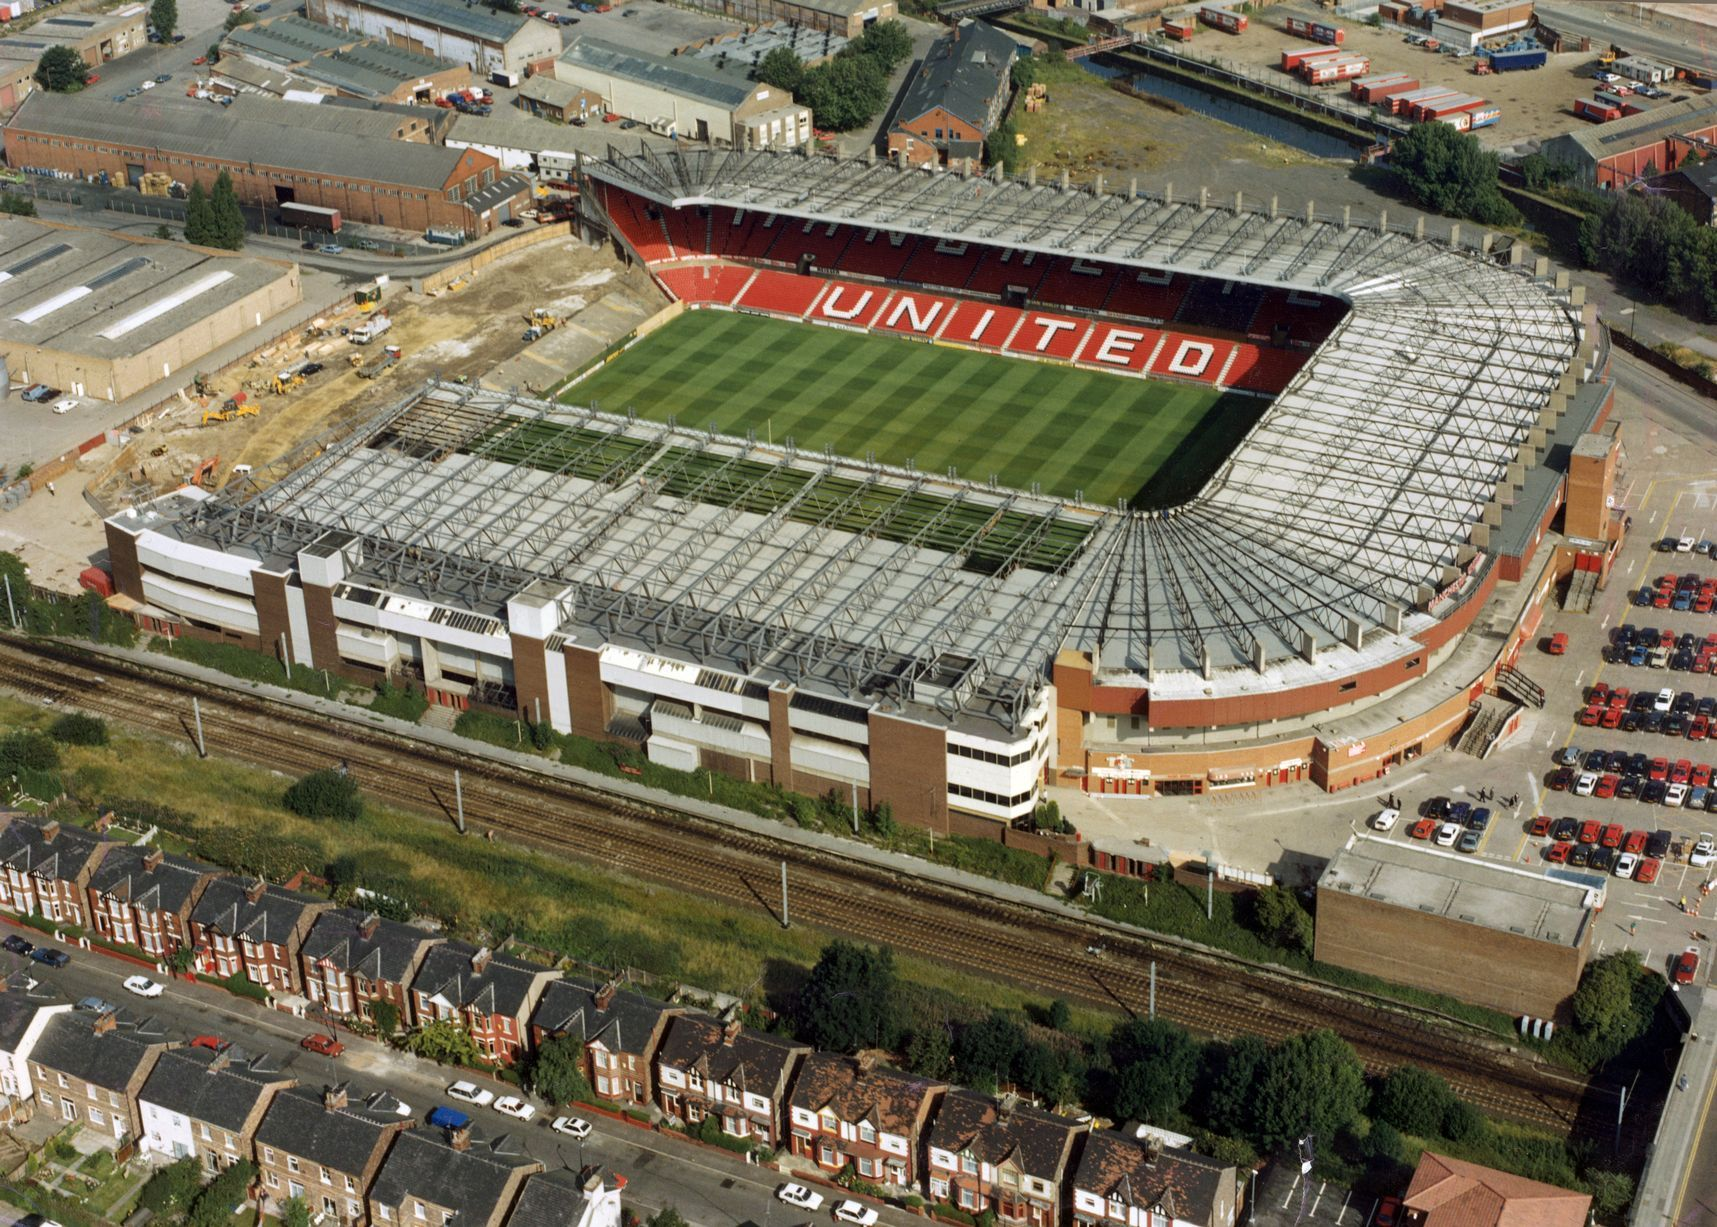 Old trafford 105 years at the home of man utd trafford for Classic house 1992